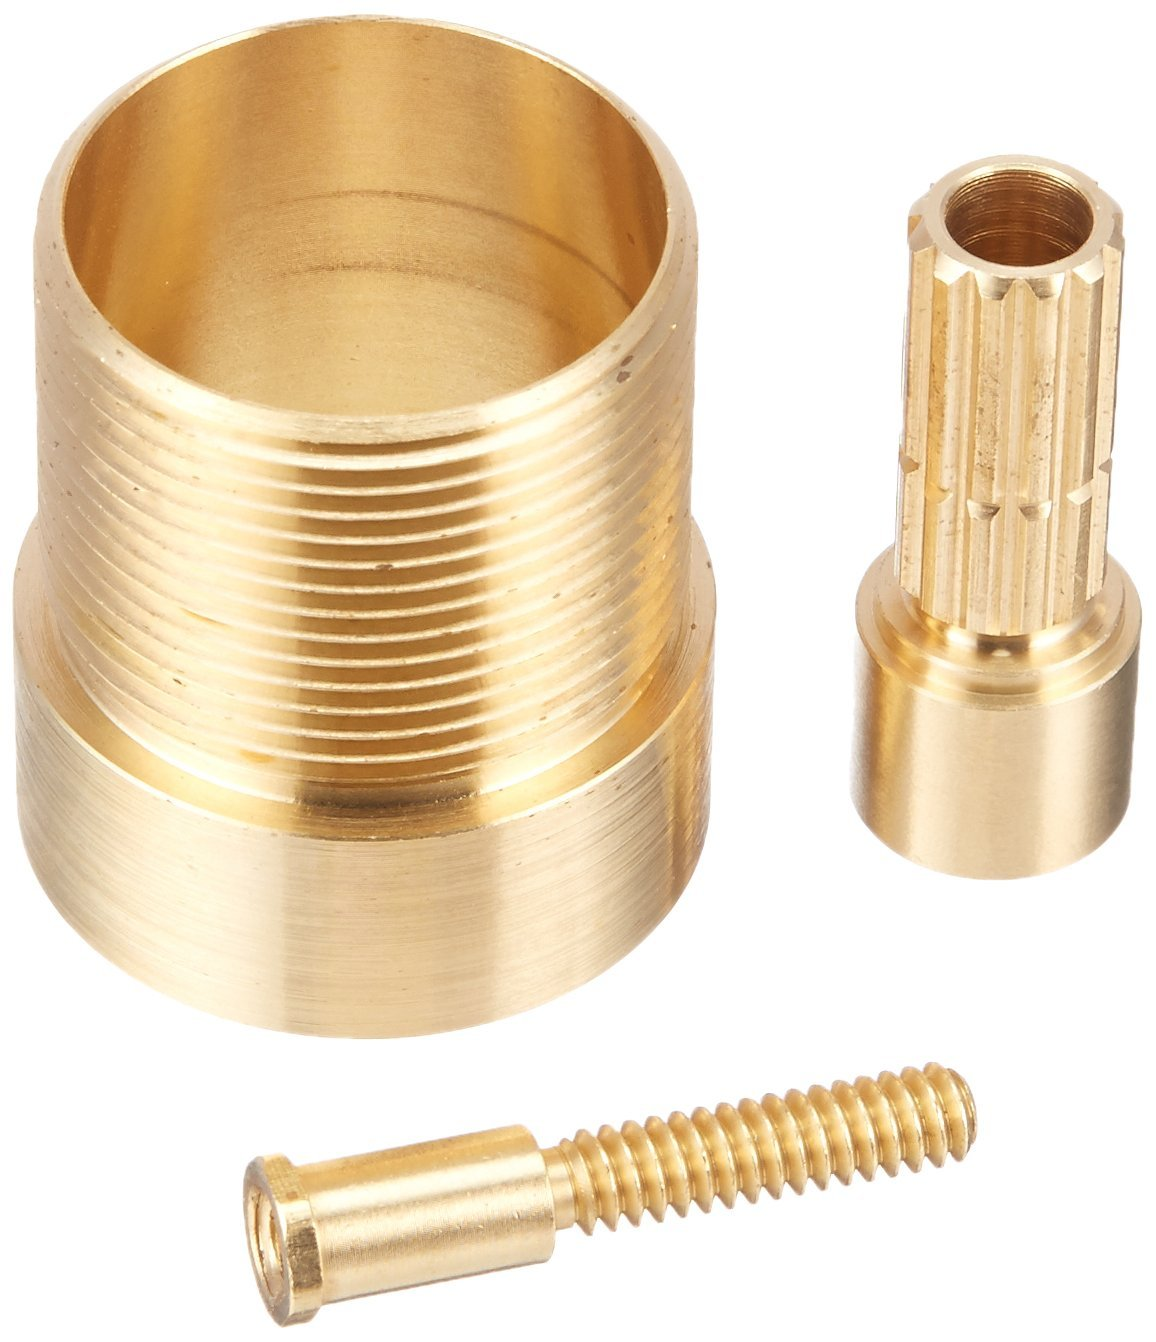 1-Pack 18592E DANCO Reduced-Lead Durable Brass Cold Stem for Price Pfister Faucets 7G-1C